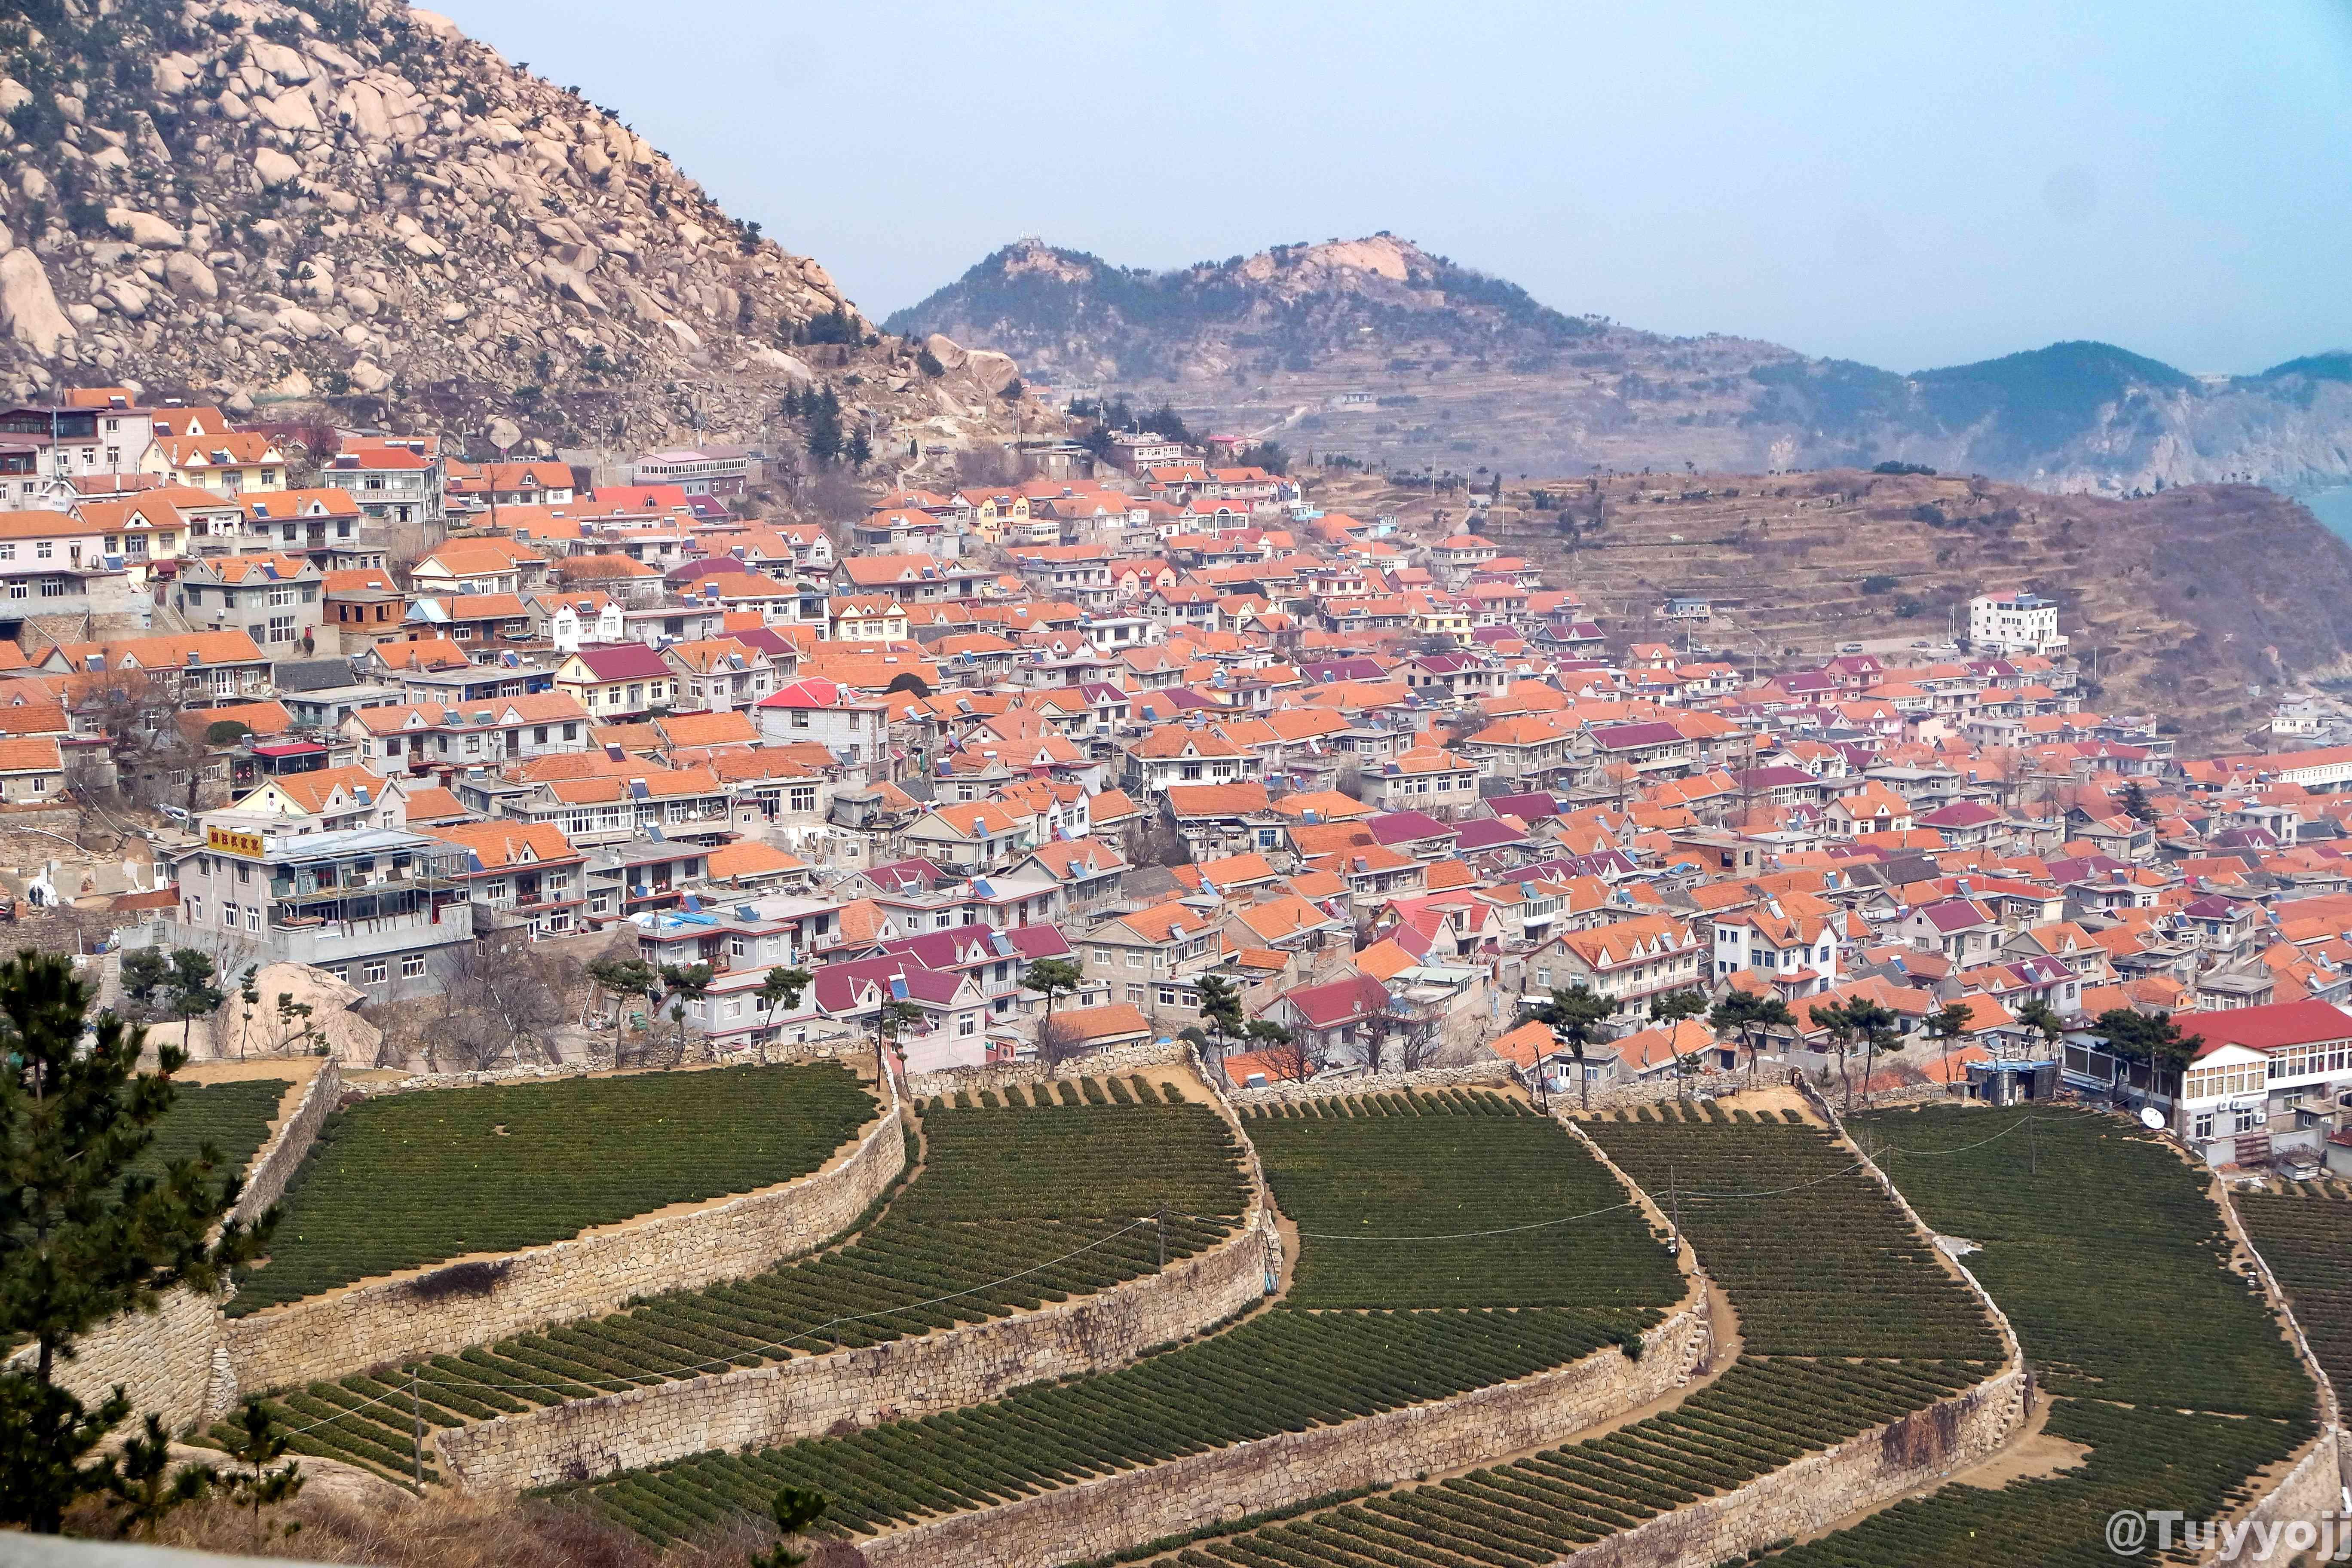 Terraced fields and a Chinese city against the mountains in Shandong